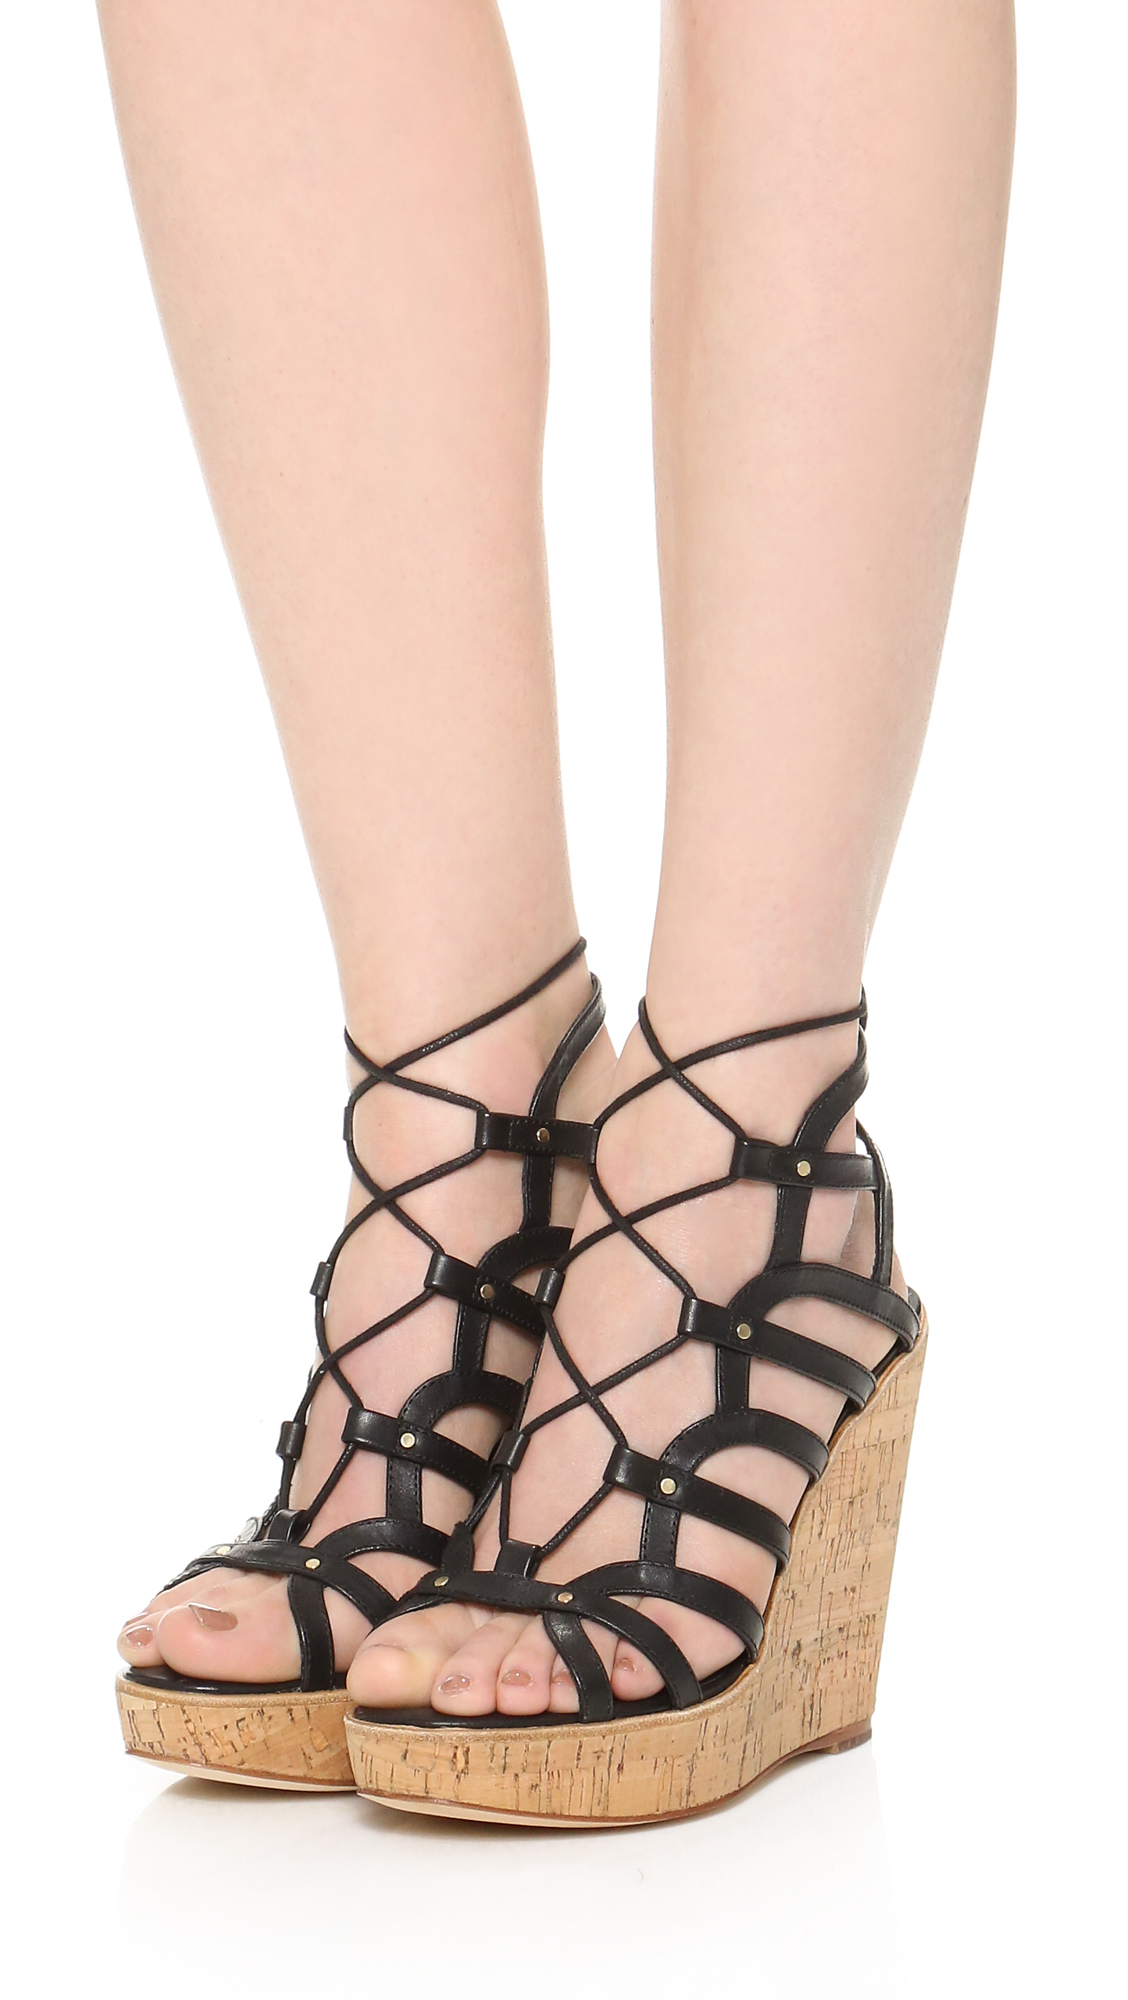 9a56716aa1ad Joie Larissa Wedge Sandals